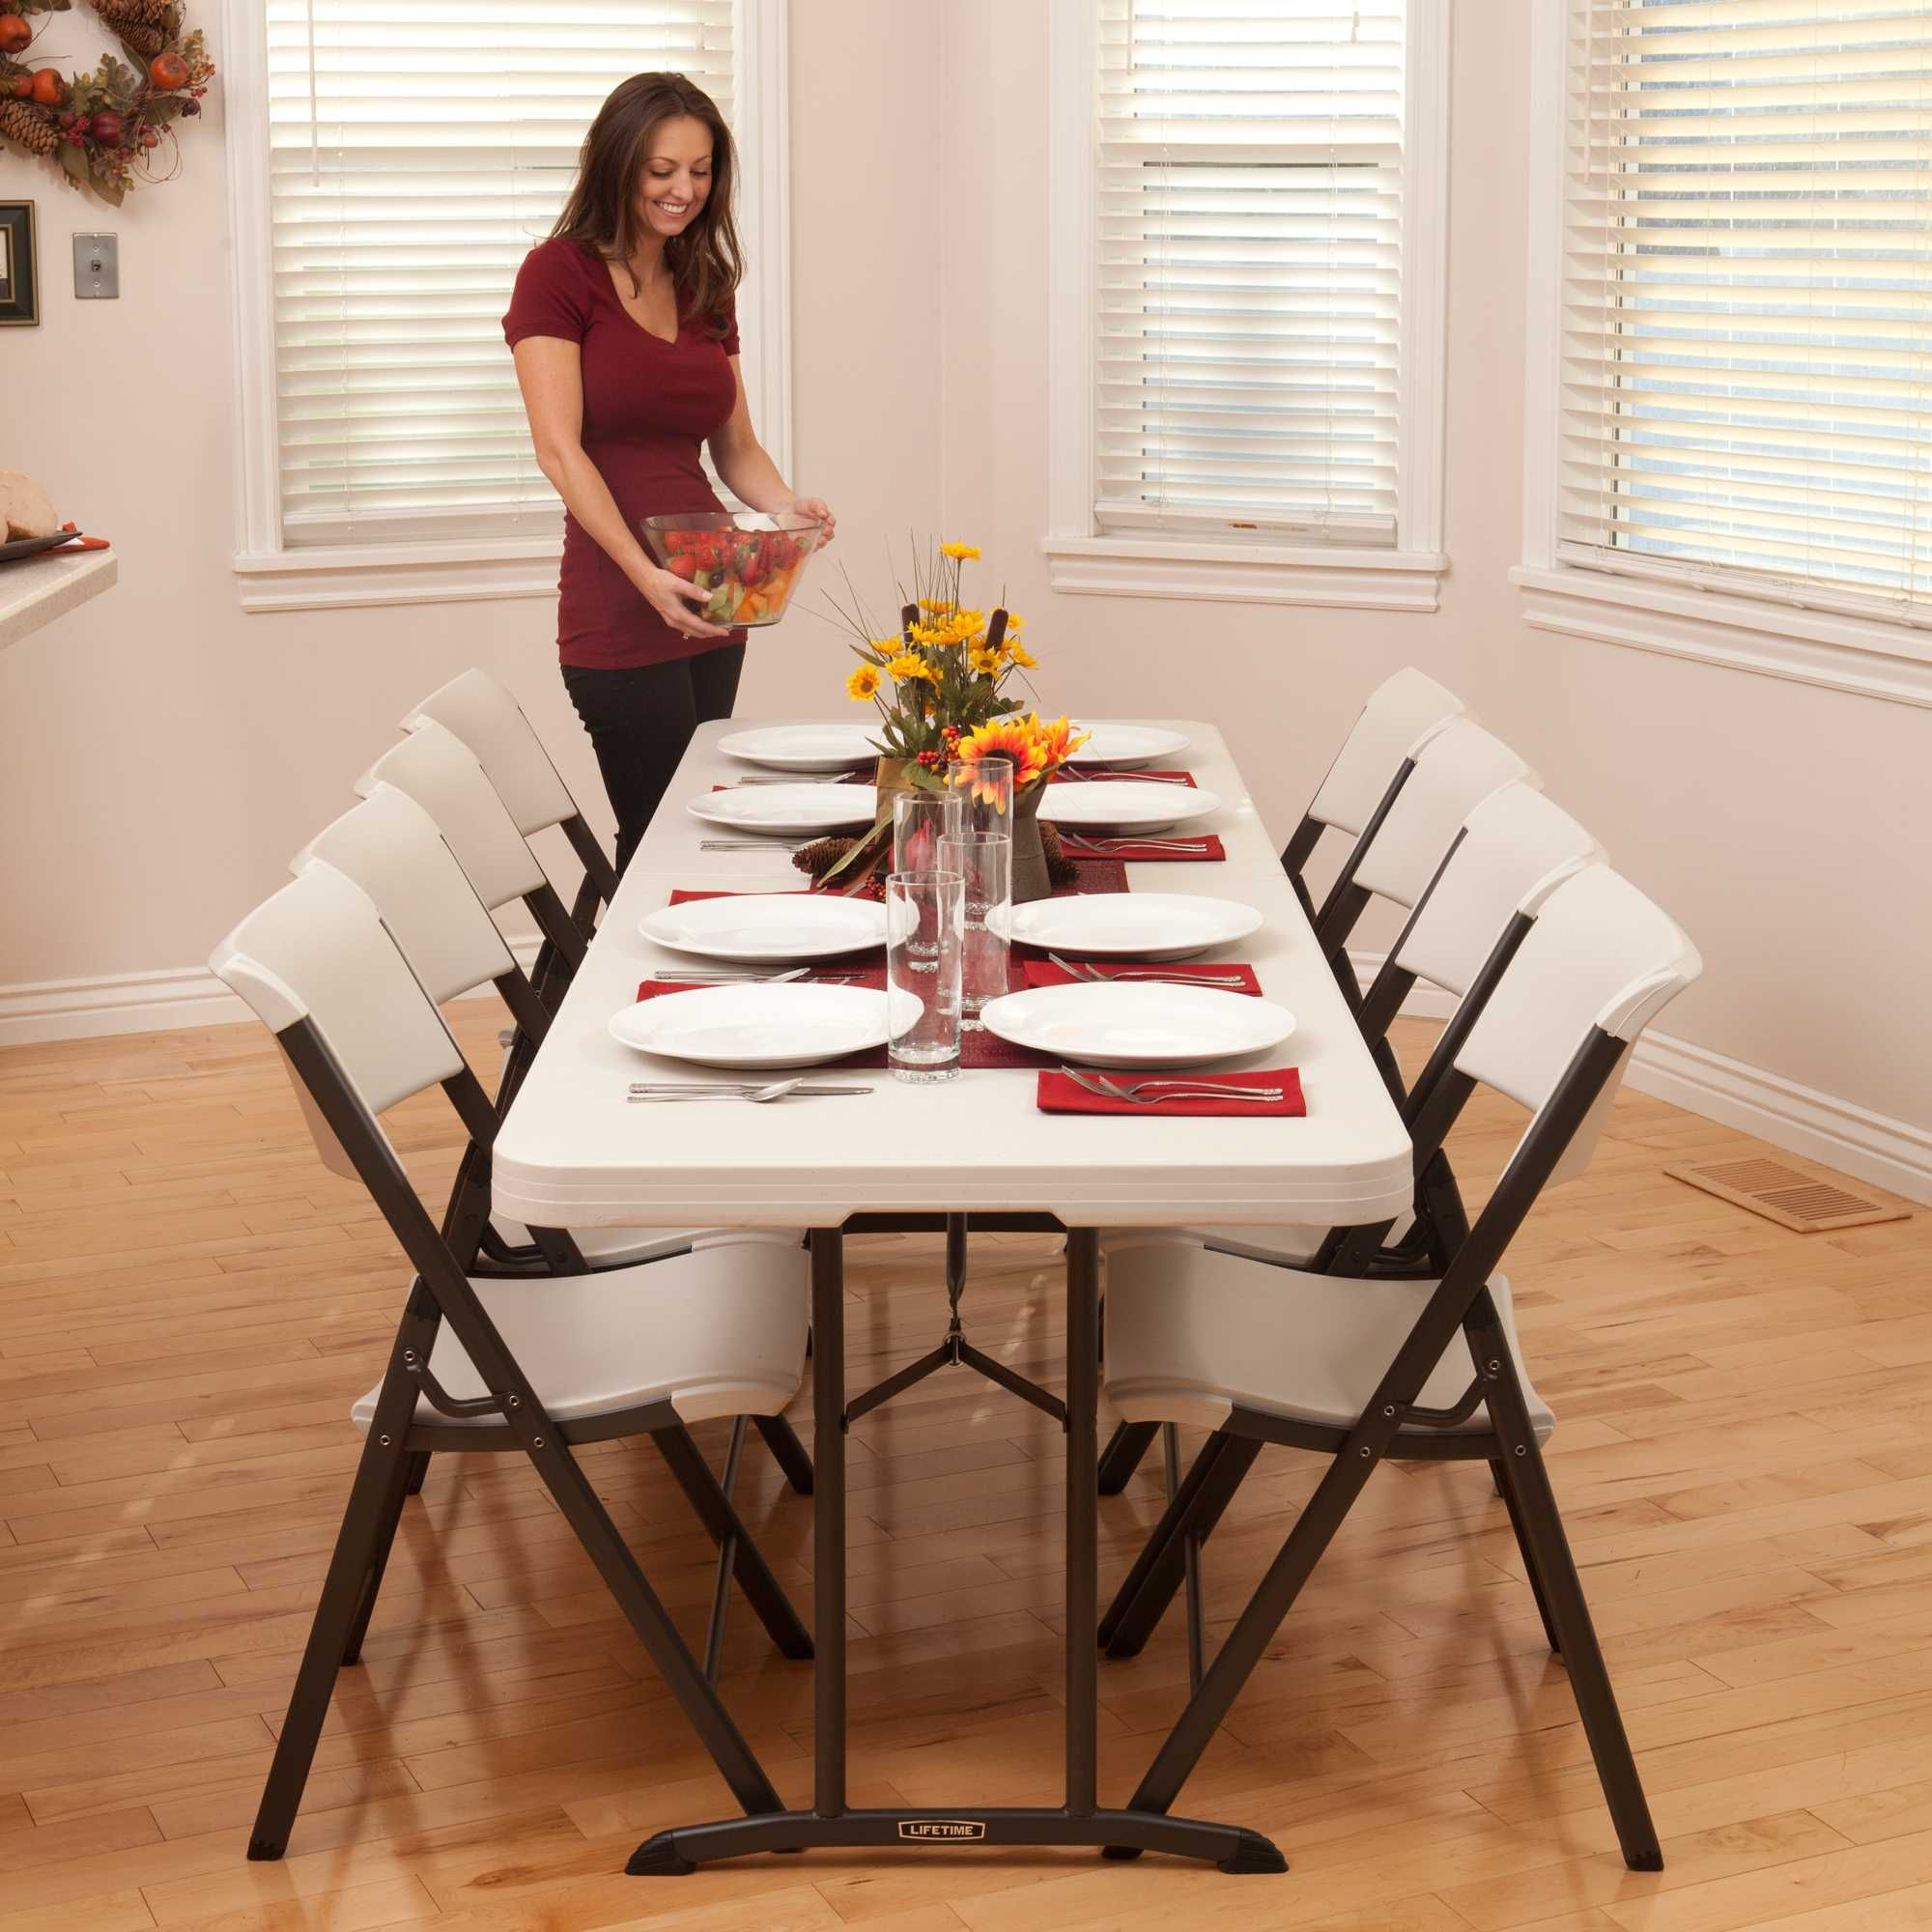 This Is A Lifetime Fold In Half Table Displayed Kitchen Dining Setting